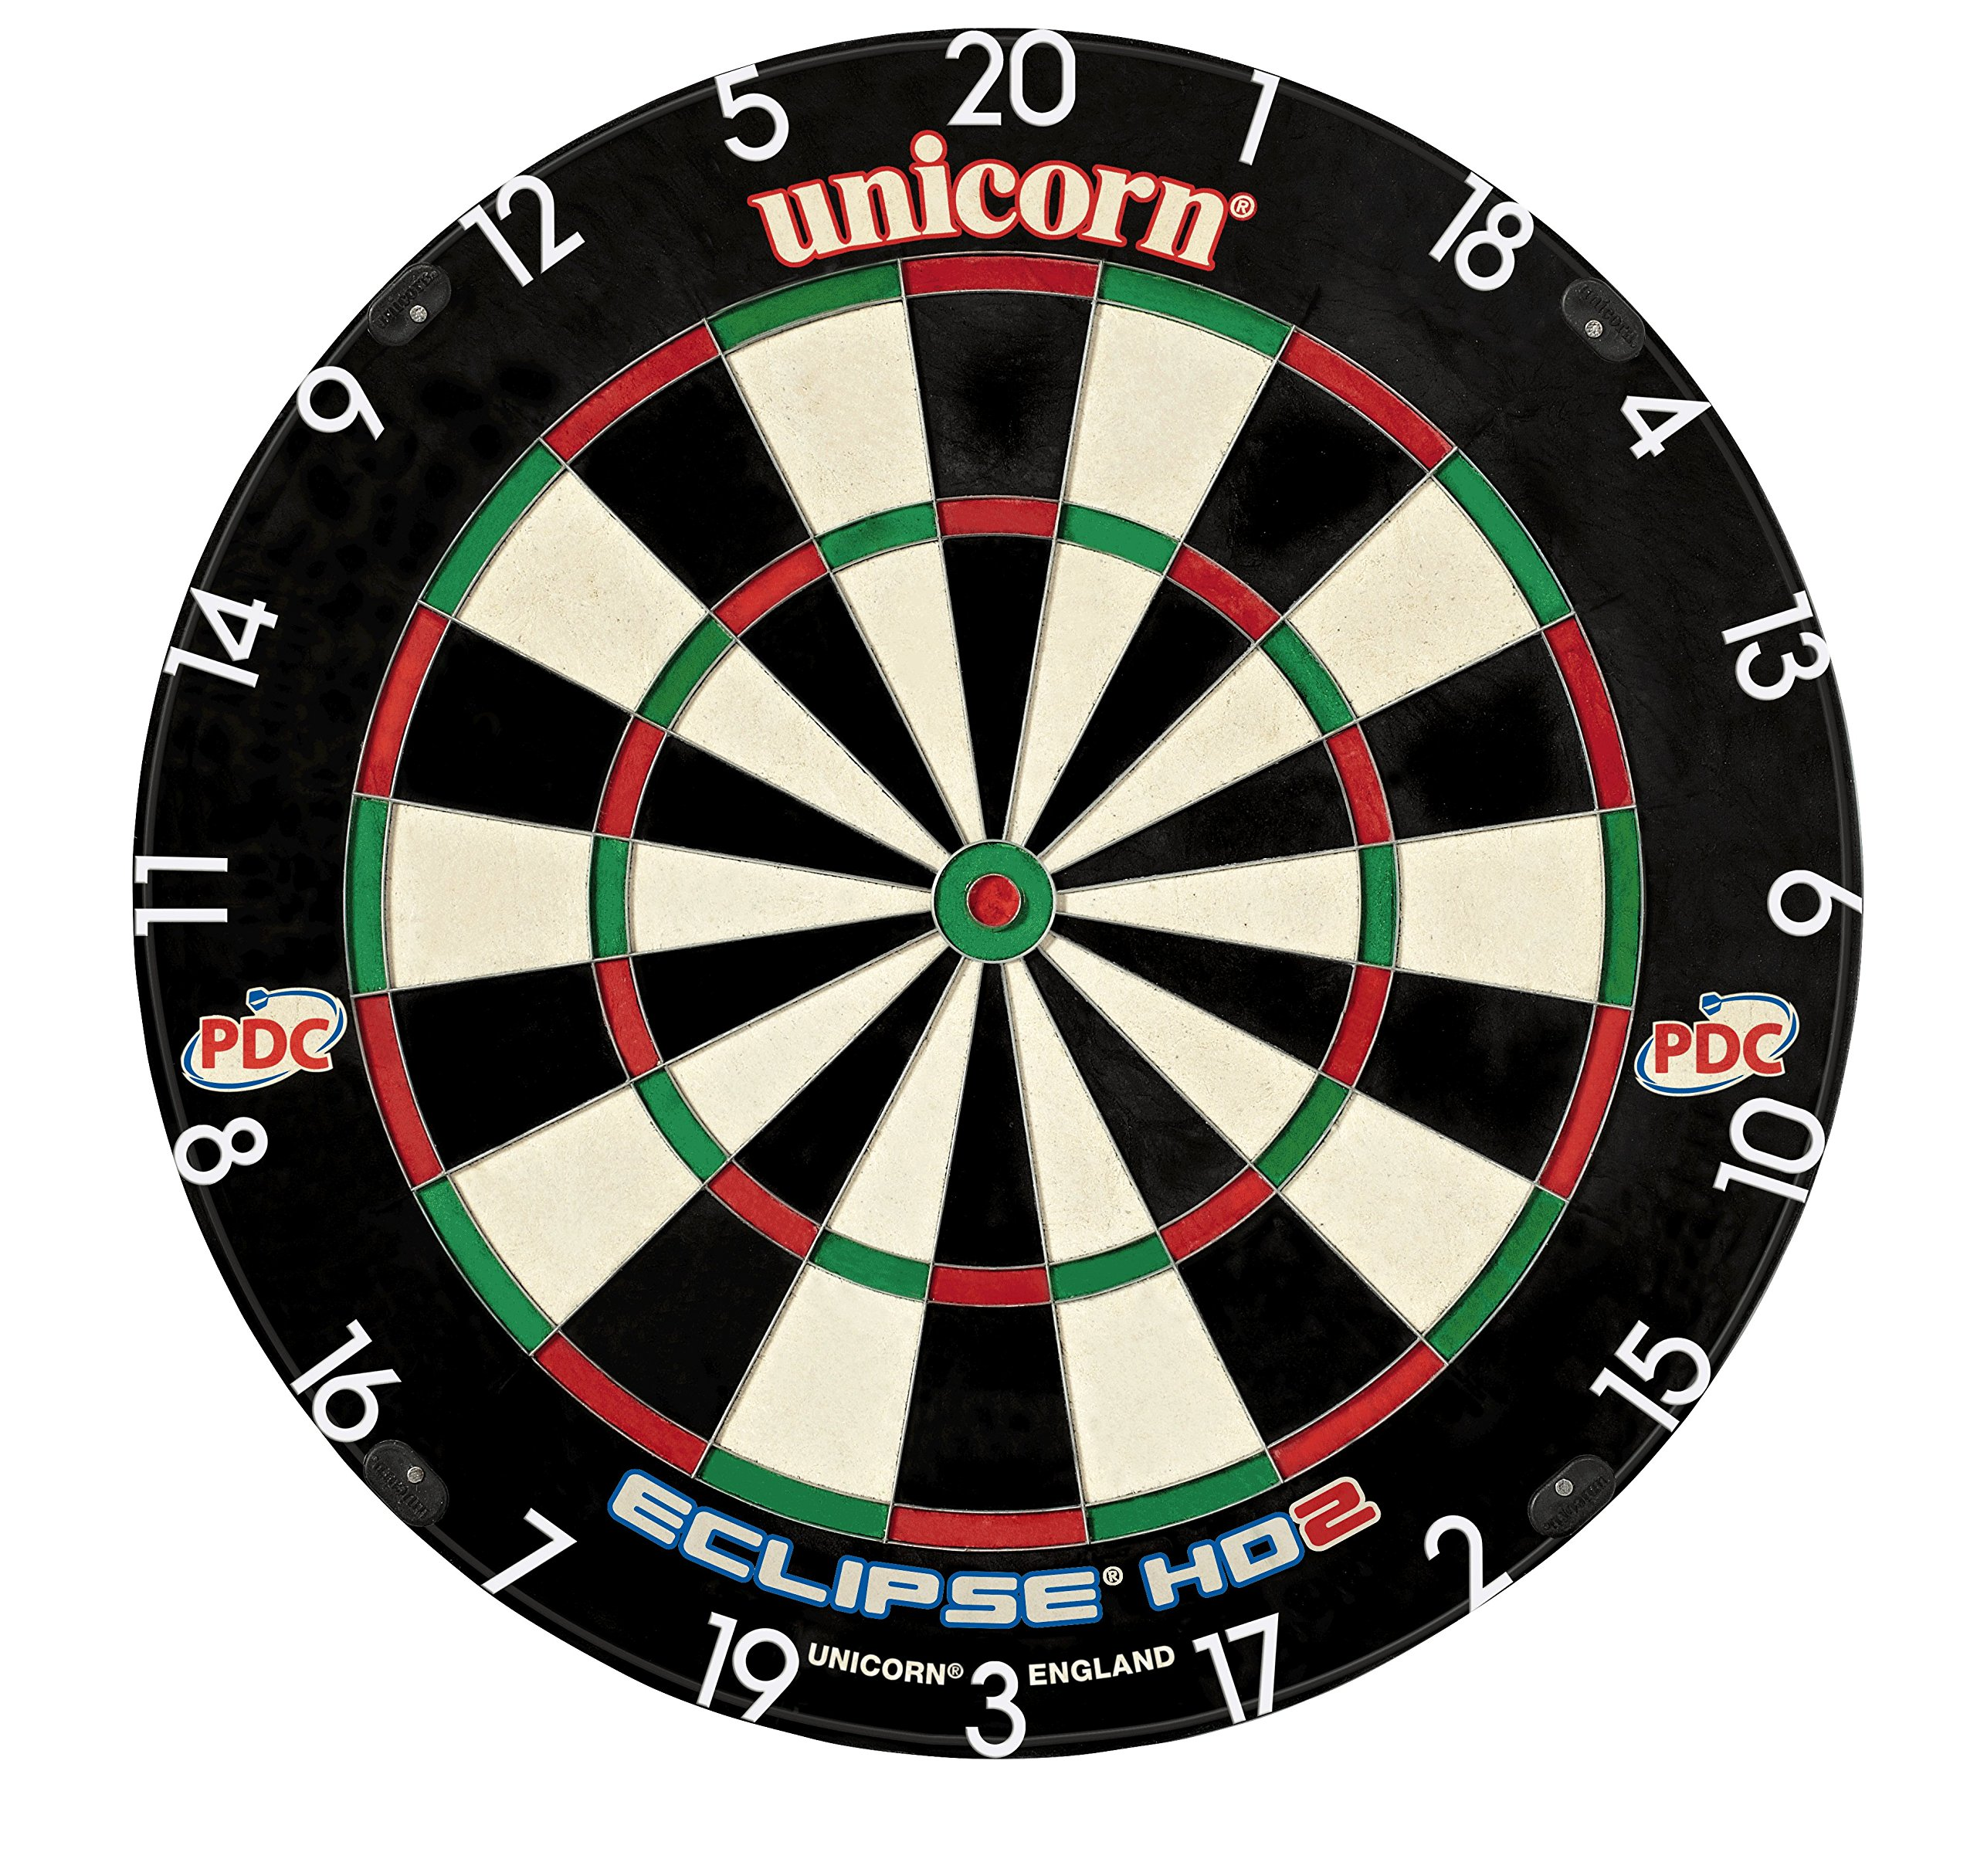 Unicorn Eclipse HD2 High Definition Professional Bristle Dartboard with Increased Playing Area and Super Thin Bullseye by Unicorn